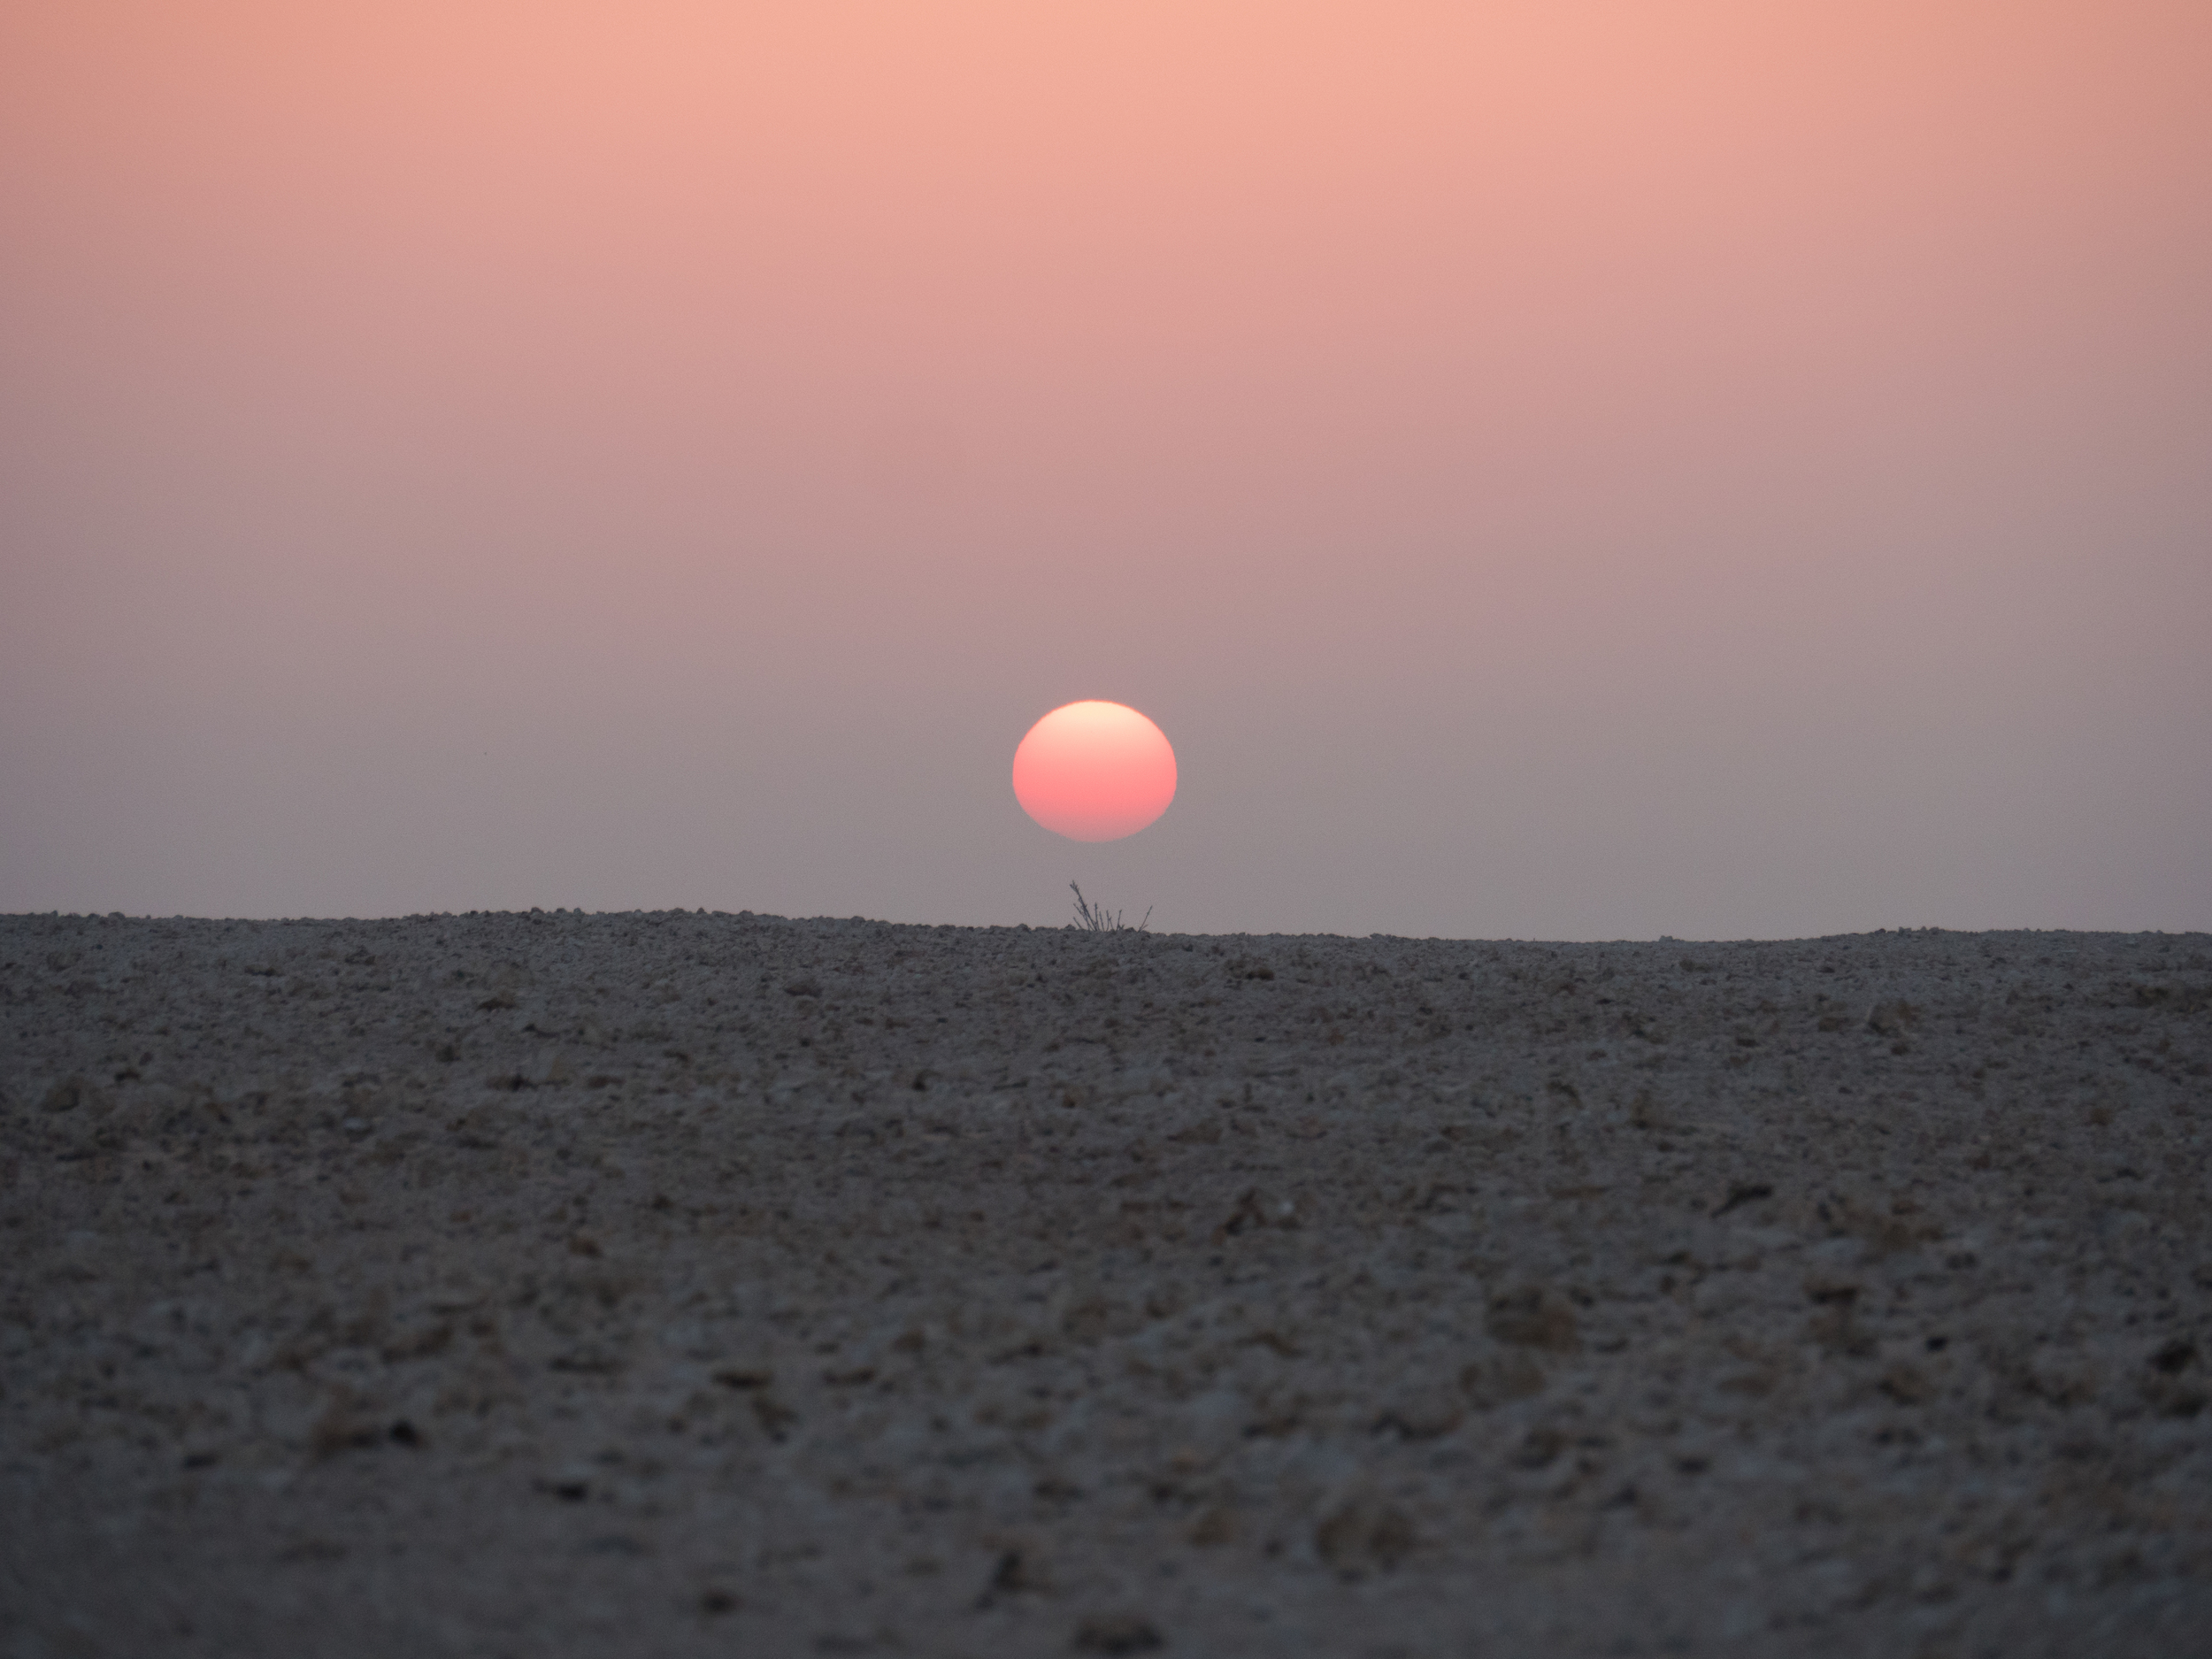 Photo credit mine. Sunrise, desert sunrise, unflitered, near Shahania, Qatar